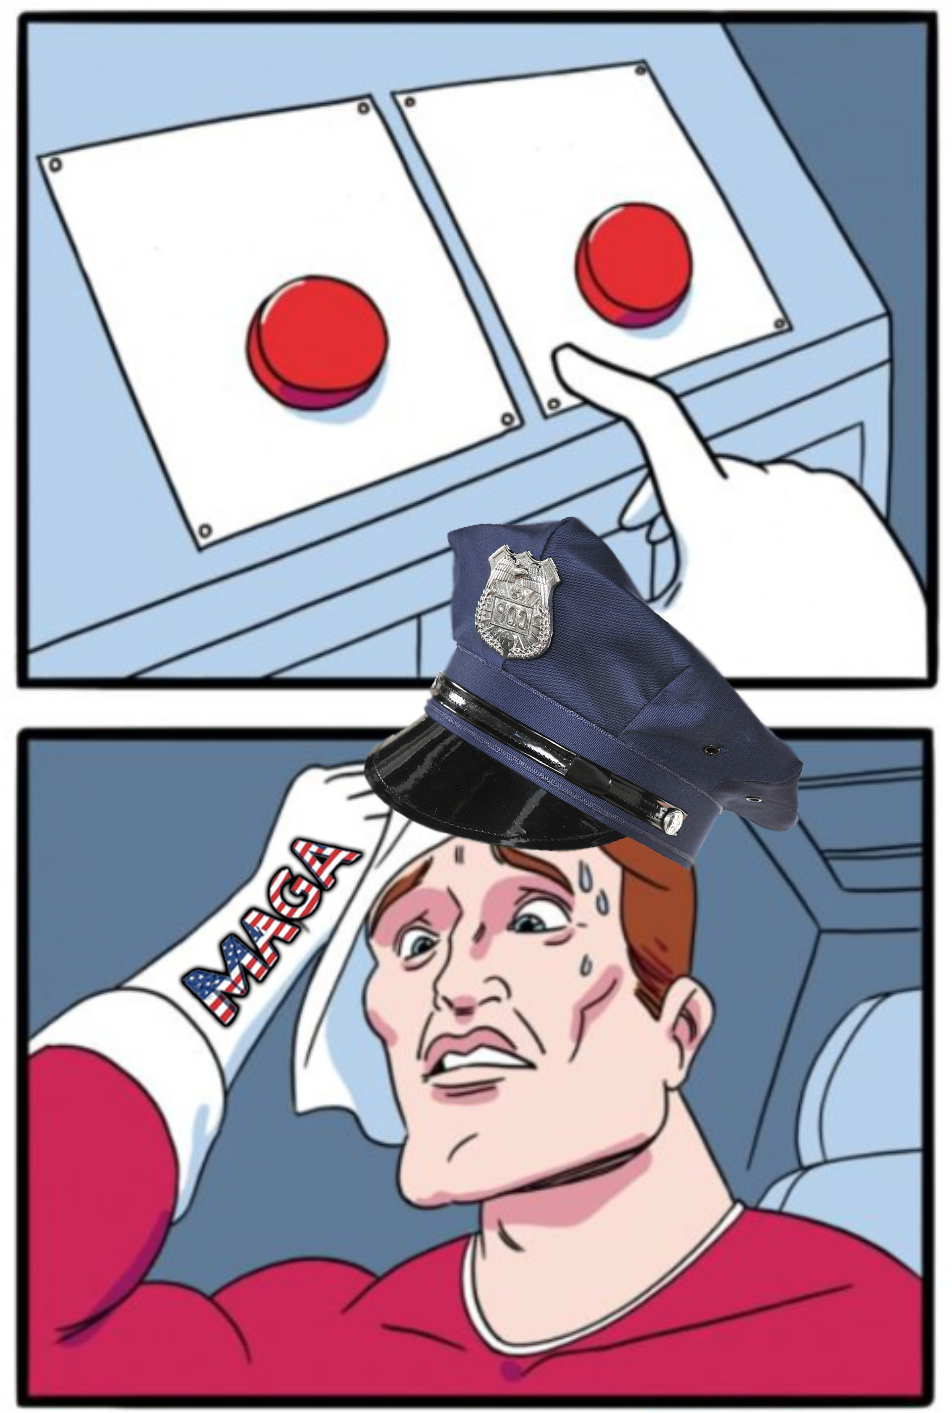 Police Two Buttons Blank Template - Imgflip